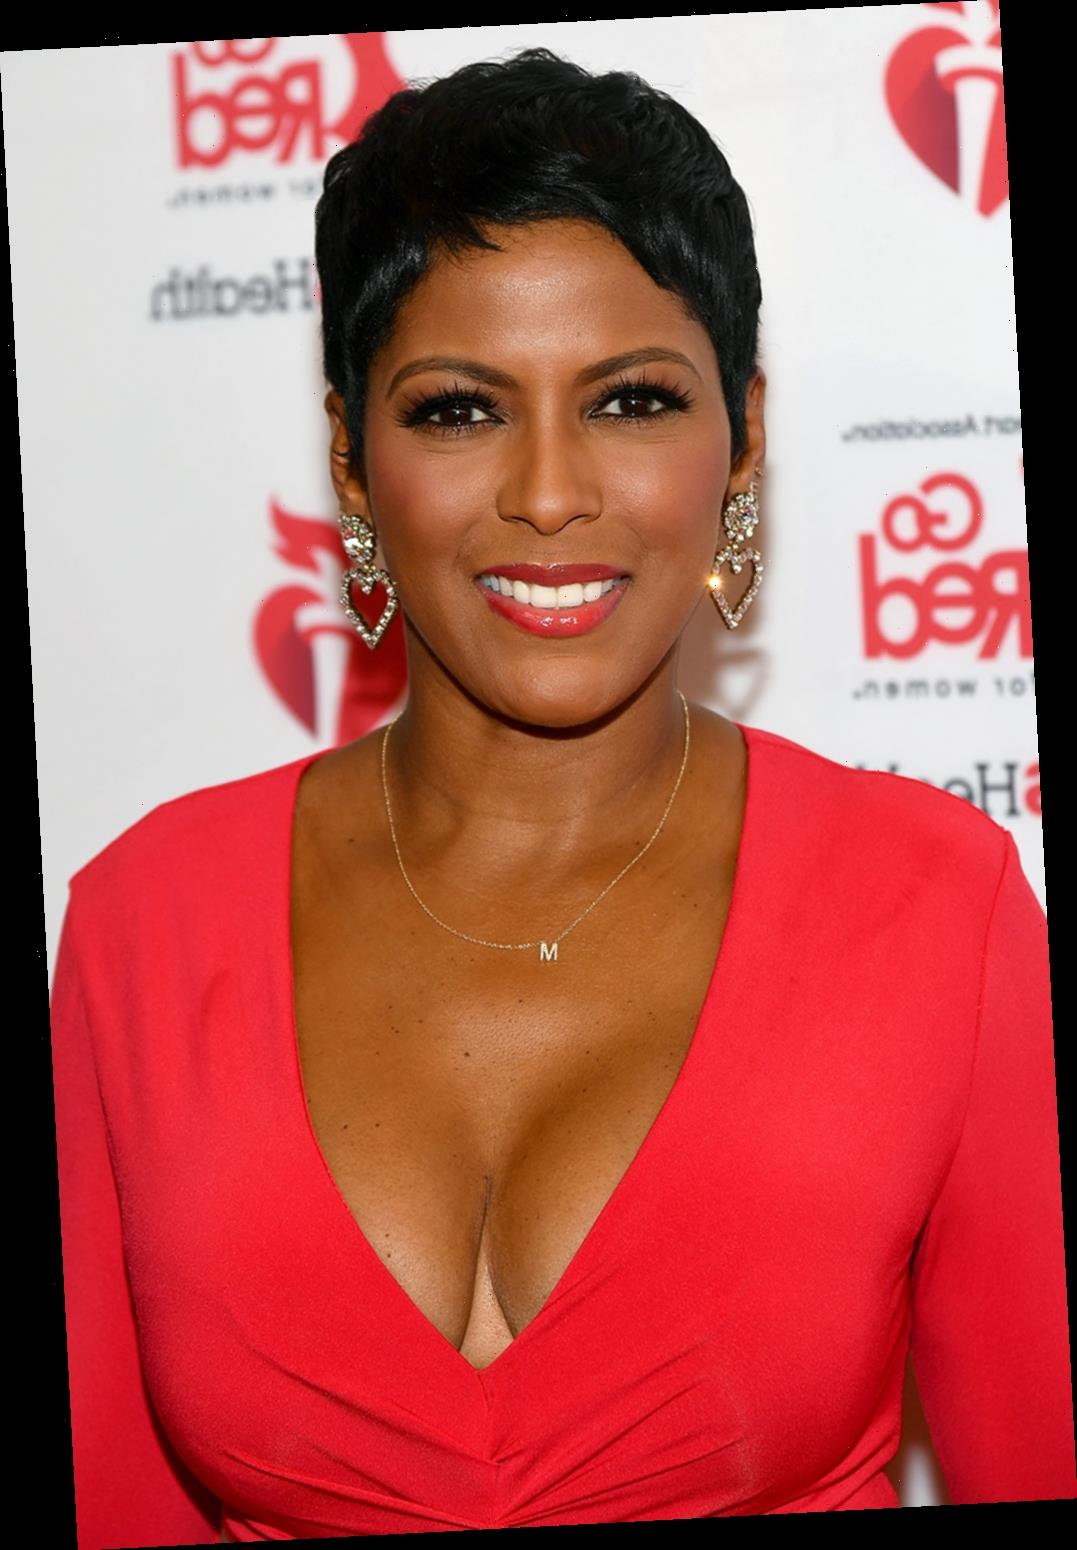 Tamron Hall Posts Rare Photo of Husband Steven Greener for Valentine's Day: 'Old Pic Same Love'